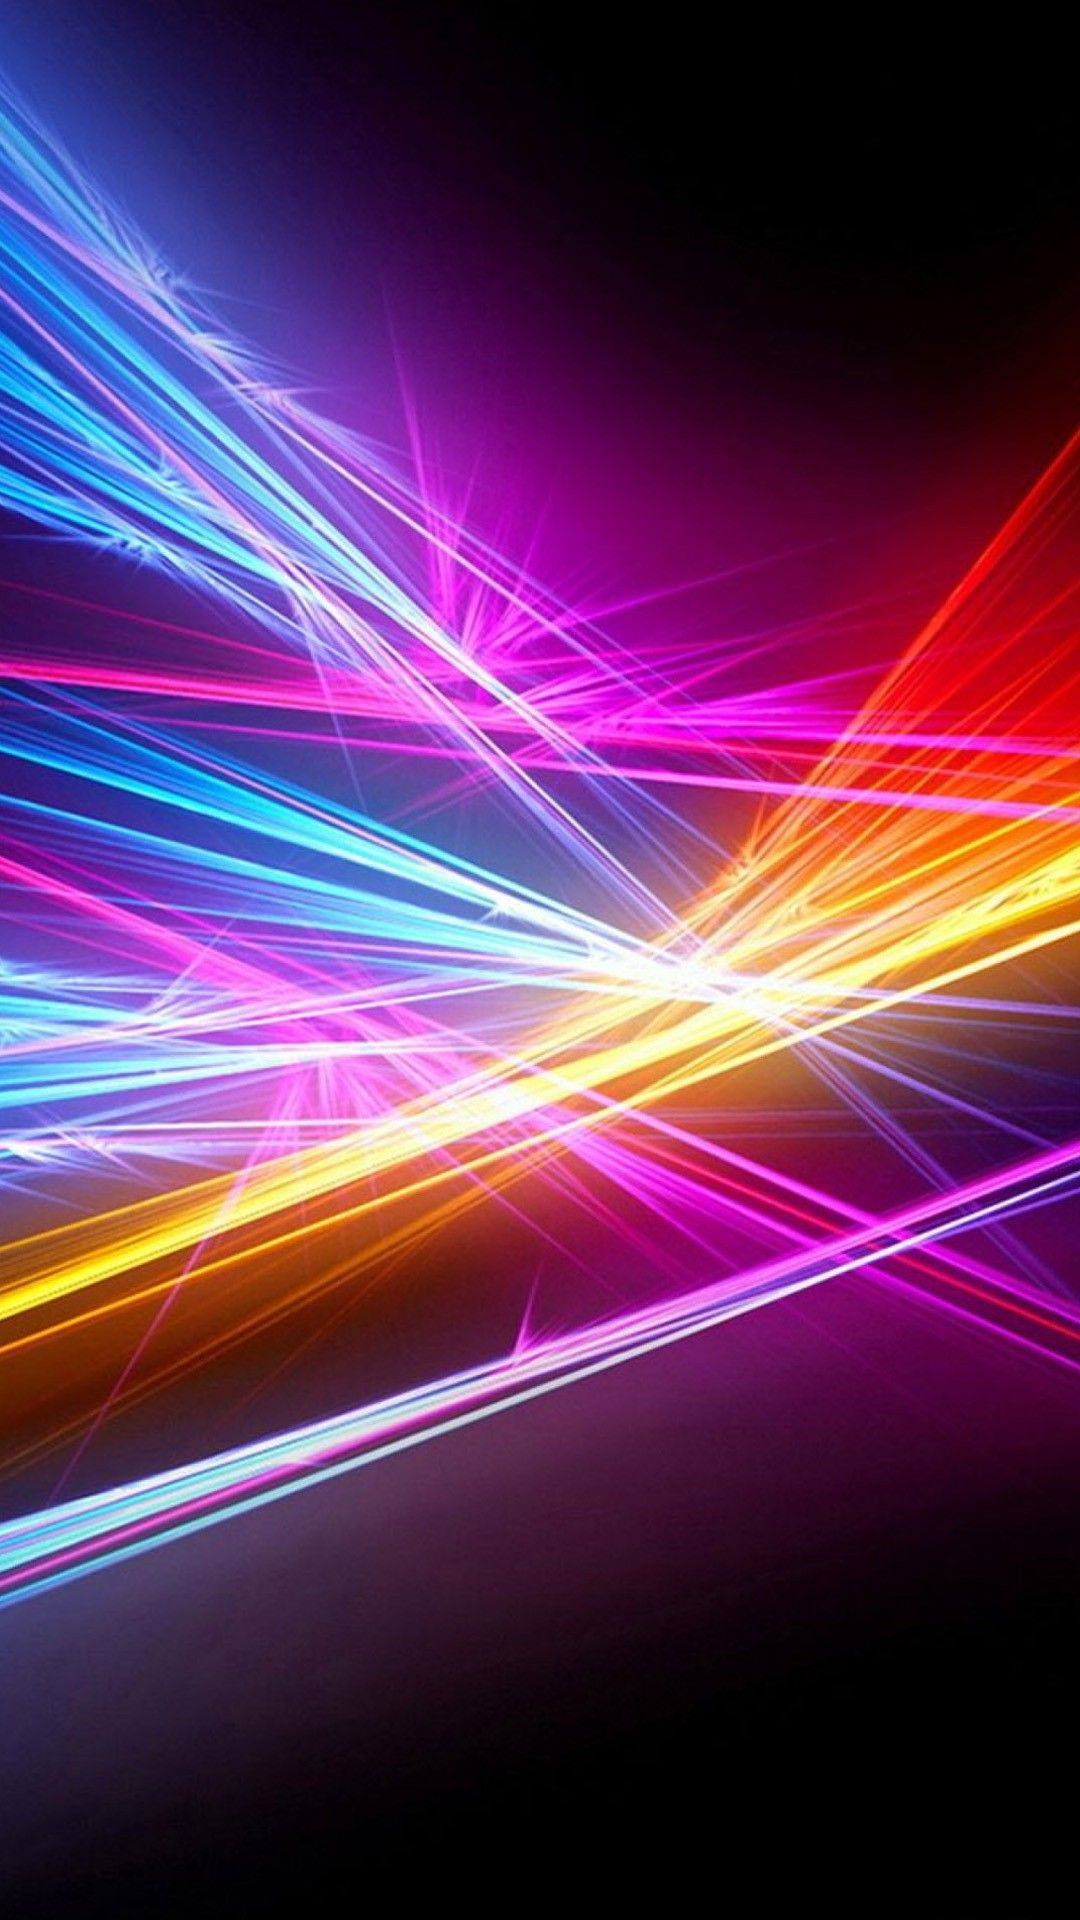 lazer show Google Search Abstract wallpaper, Lit wallpaper